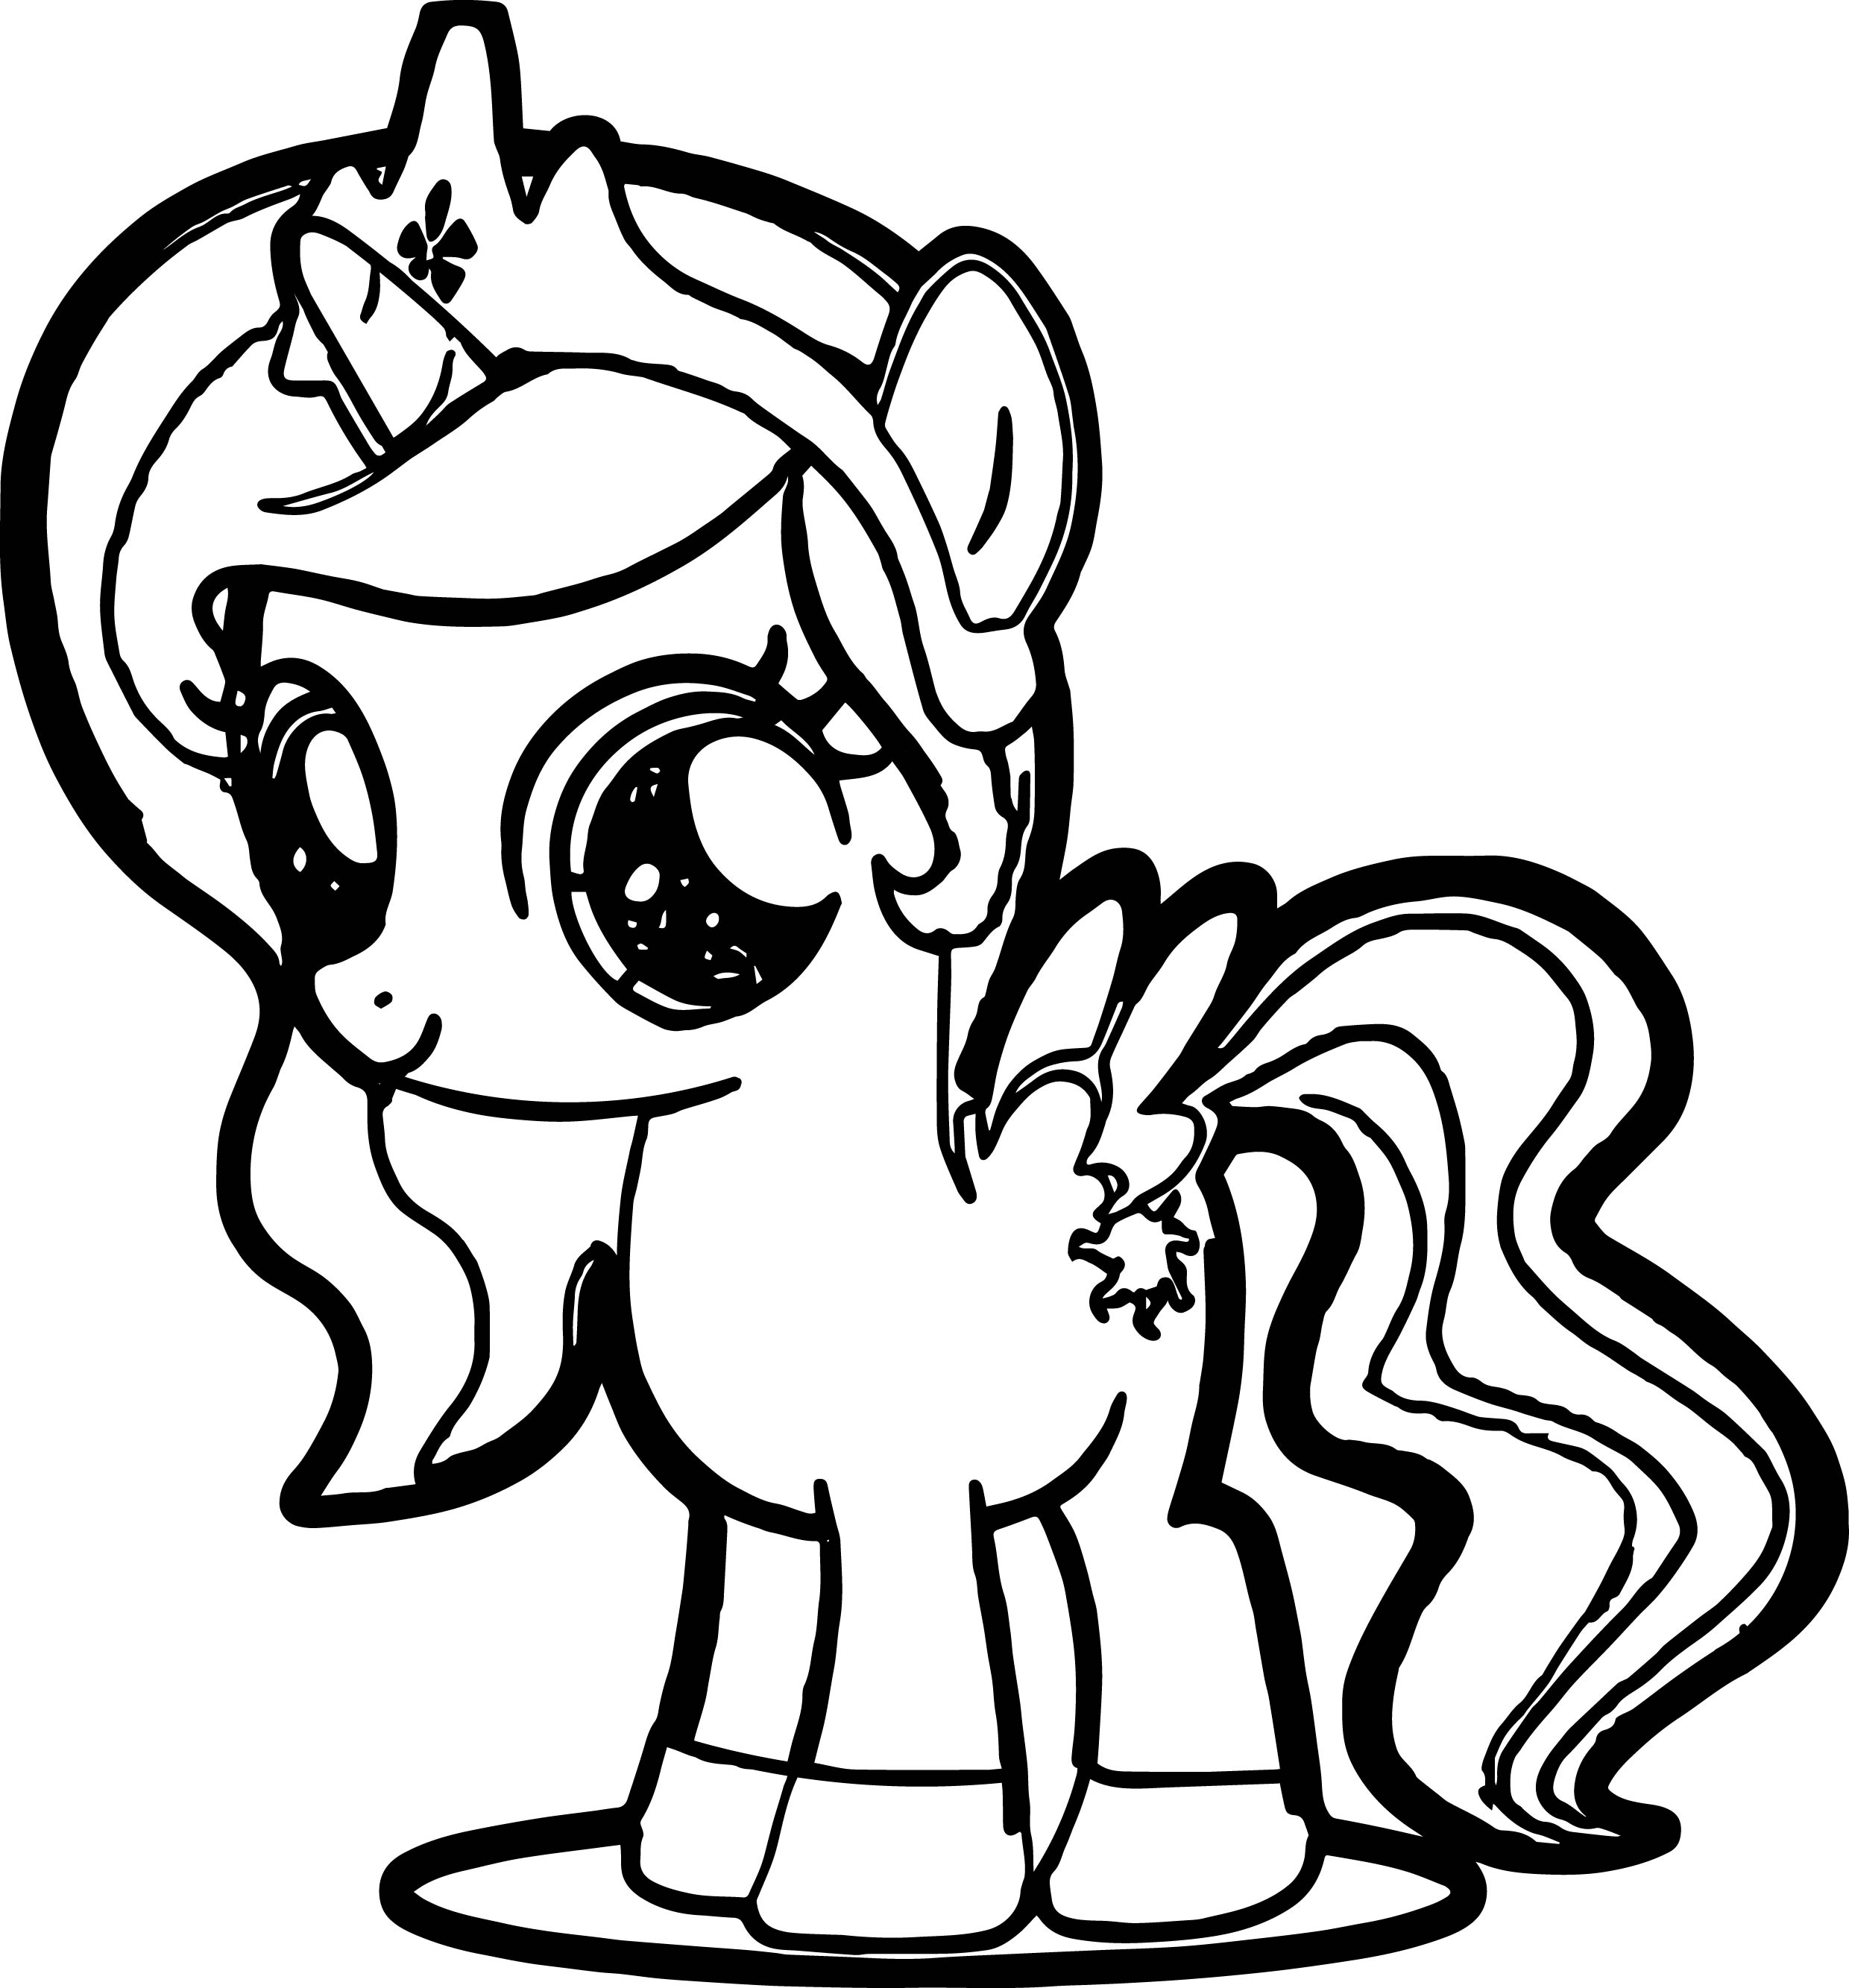 my little pony pictures to colour my little pony coloring pages coloring pages for kids colour pictures to pony my little